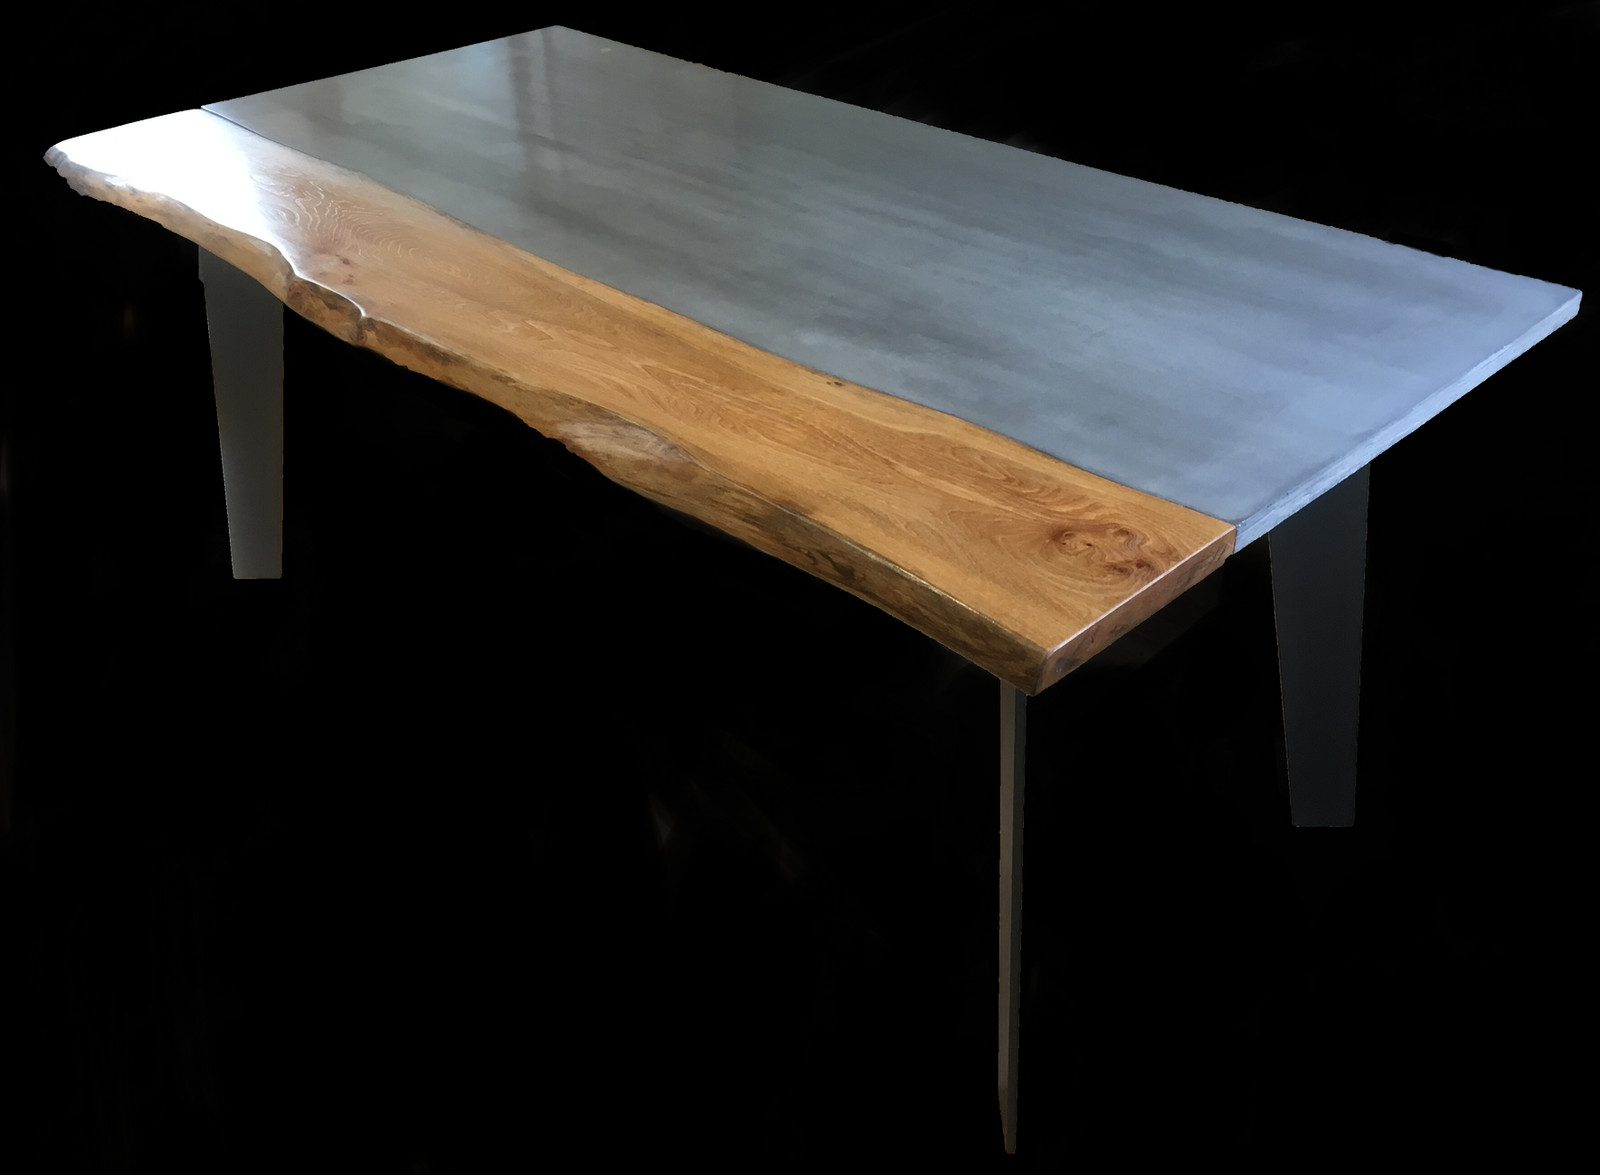 Dinner table png. Concrete